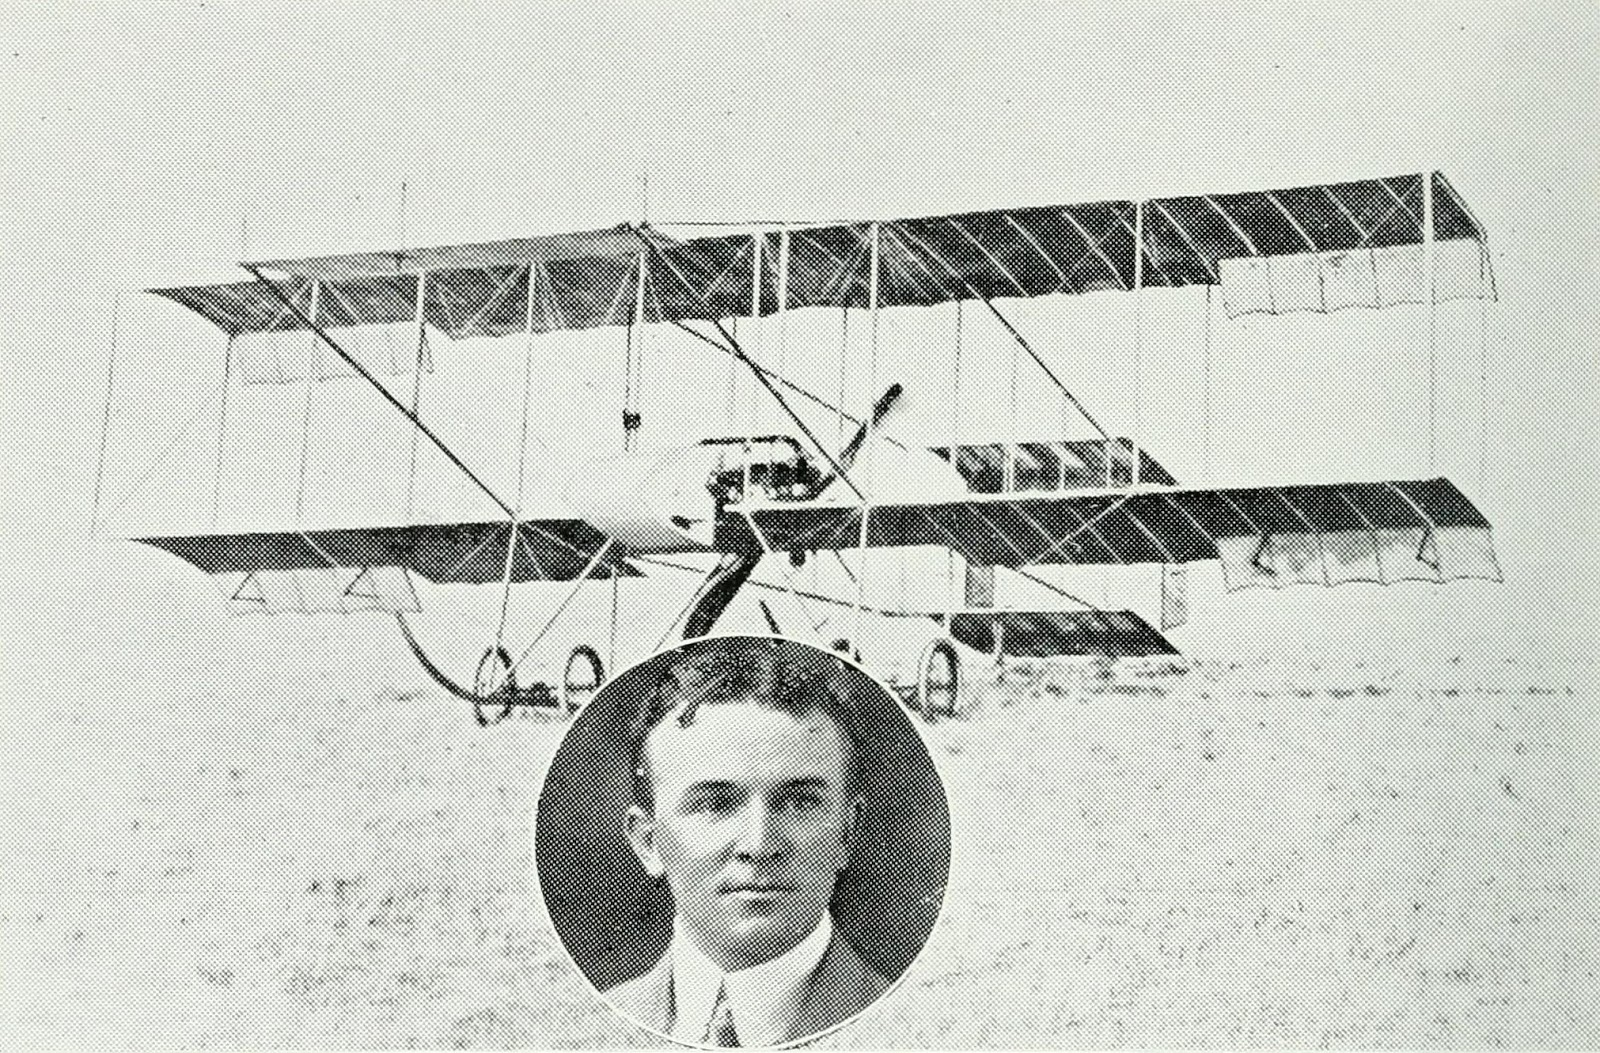 William Ewart Hart, First Australian Aviator, Born Parramatta, NSW, April 20, 1885